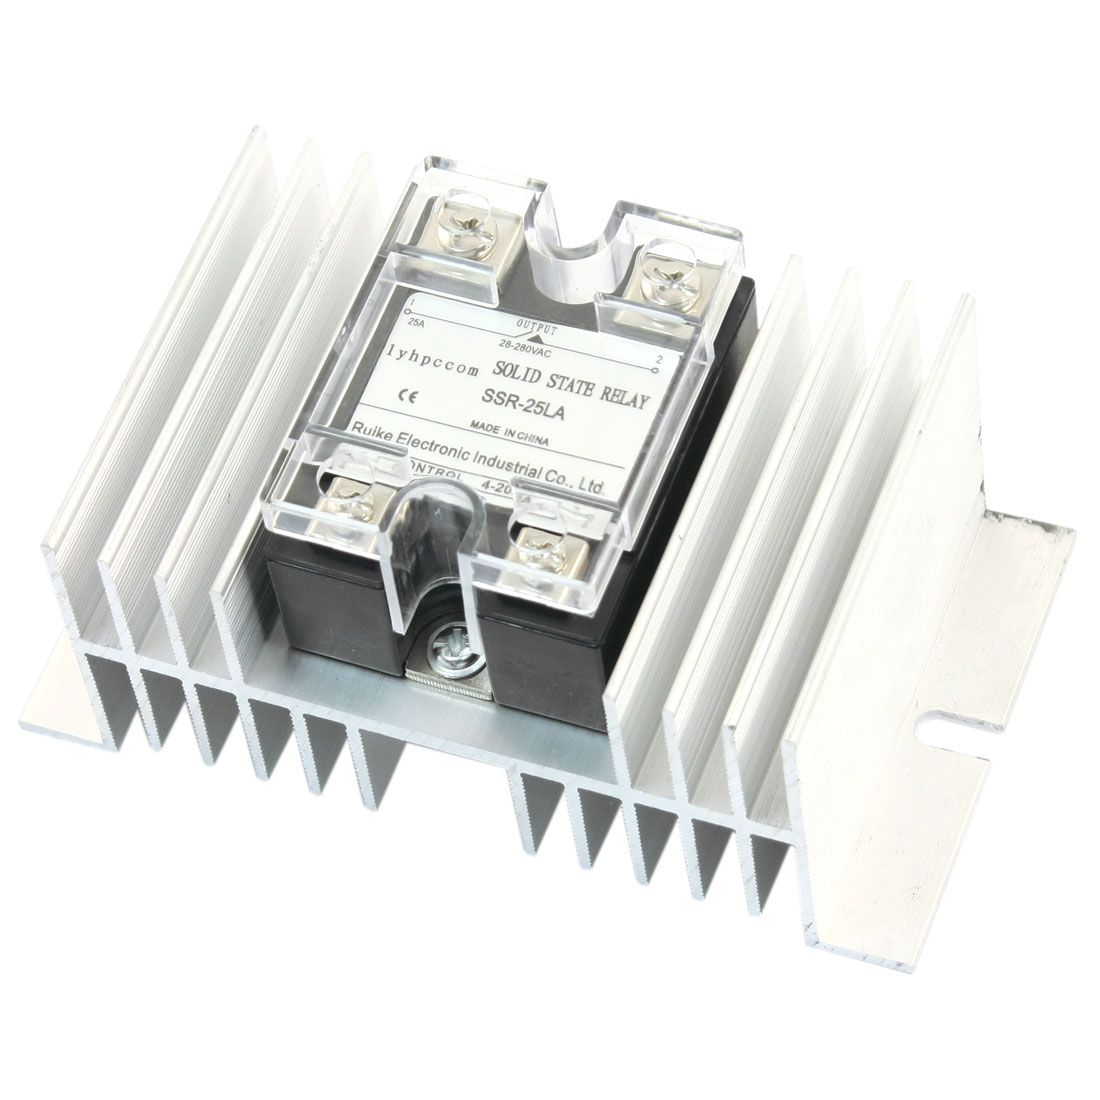 SSR-25LA 4-20mA to AC28-280V 25A Silver Tone Aluminum Heat Sink Single Phase SSR Solid State Relay